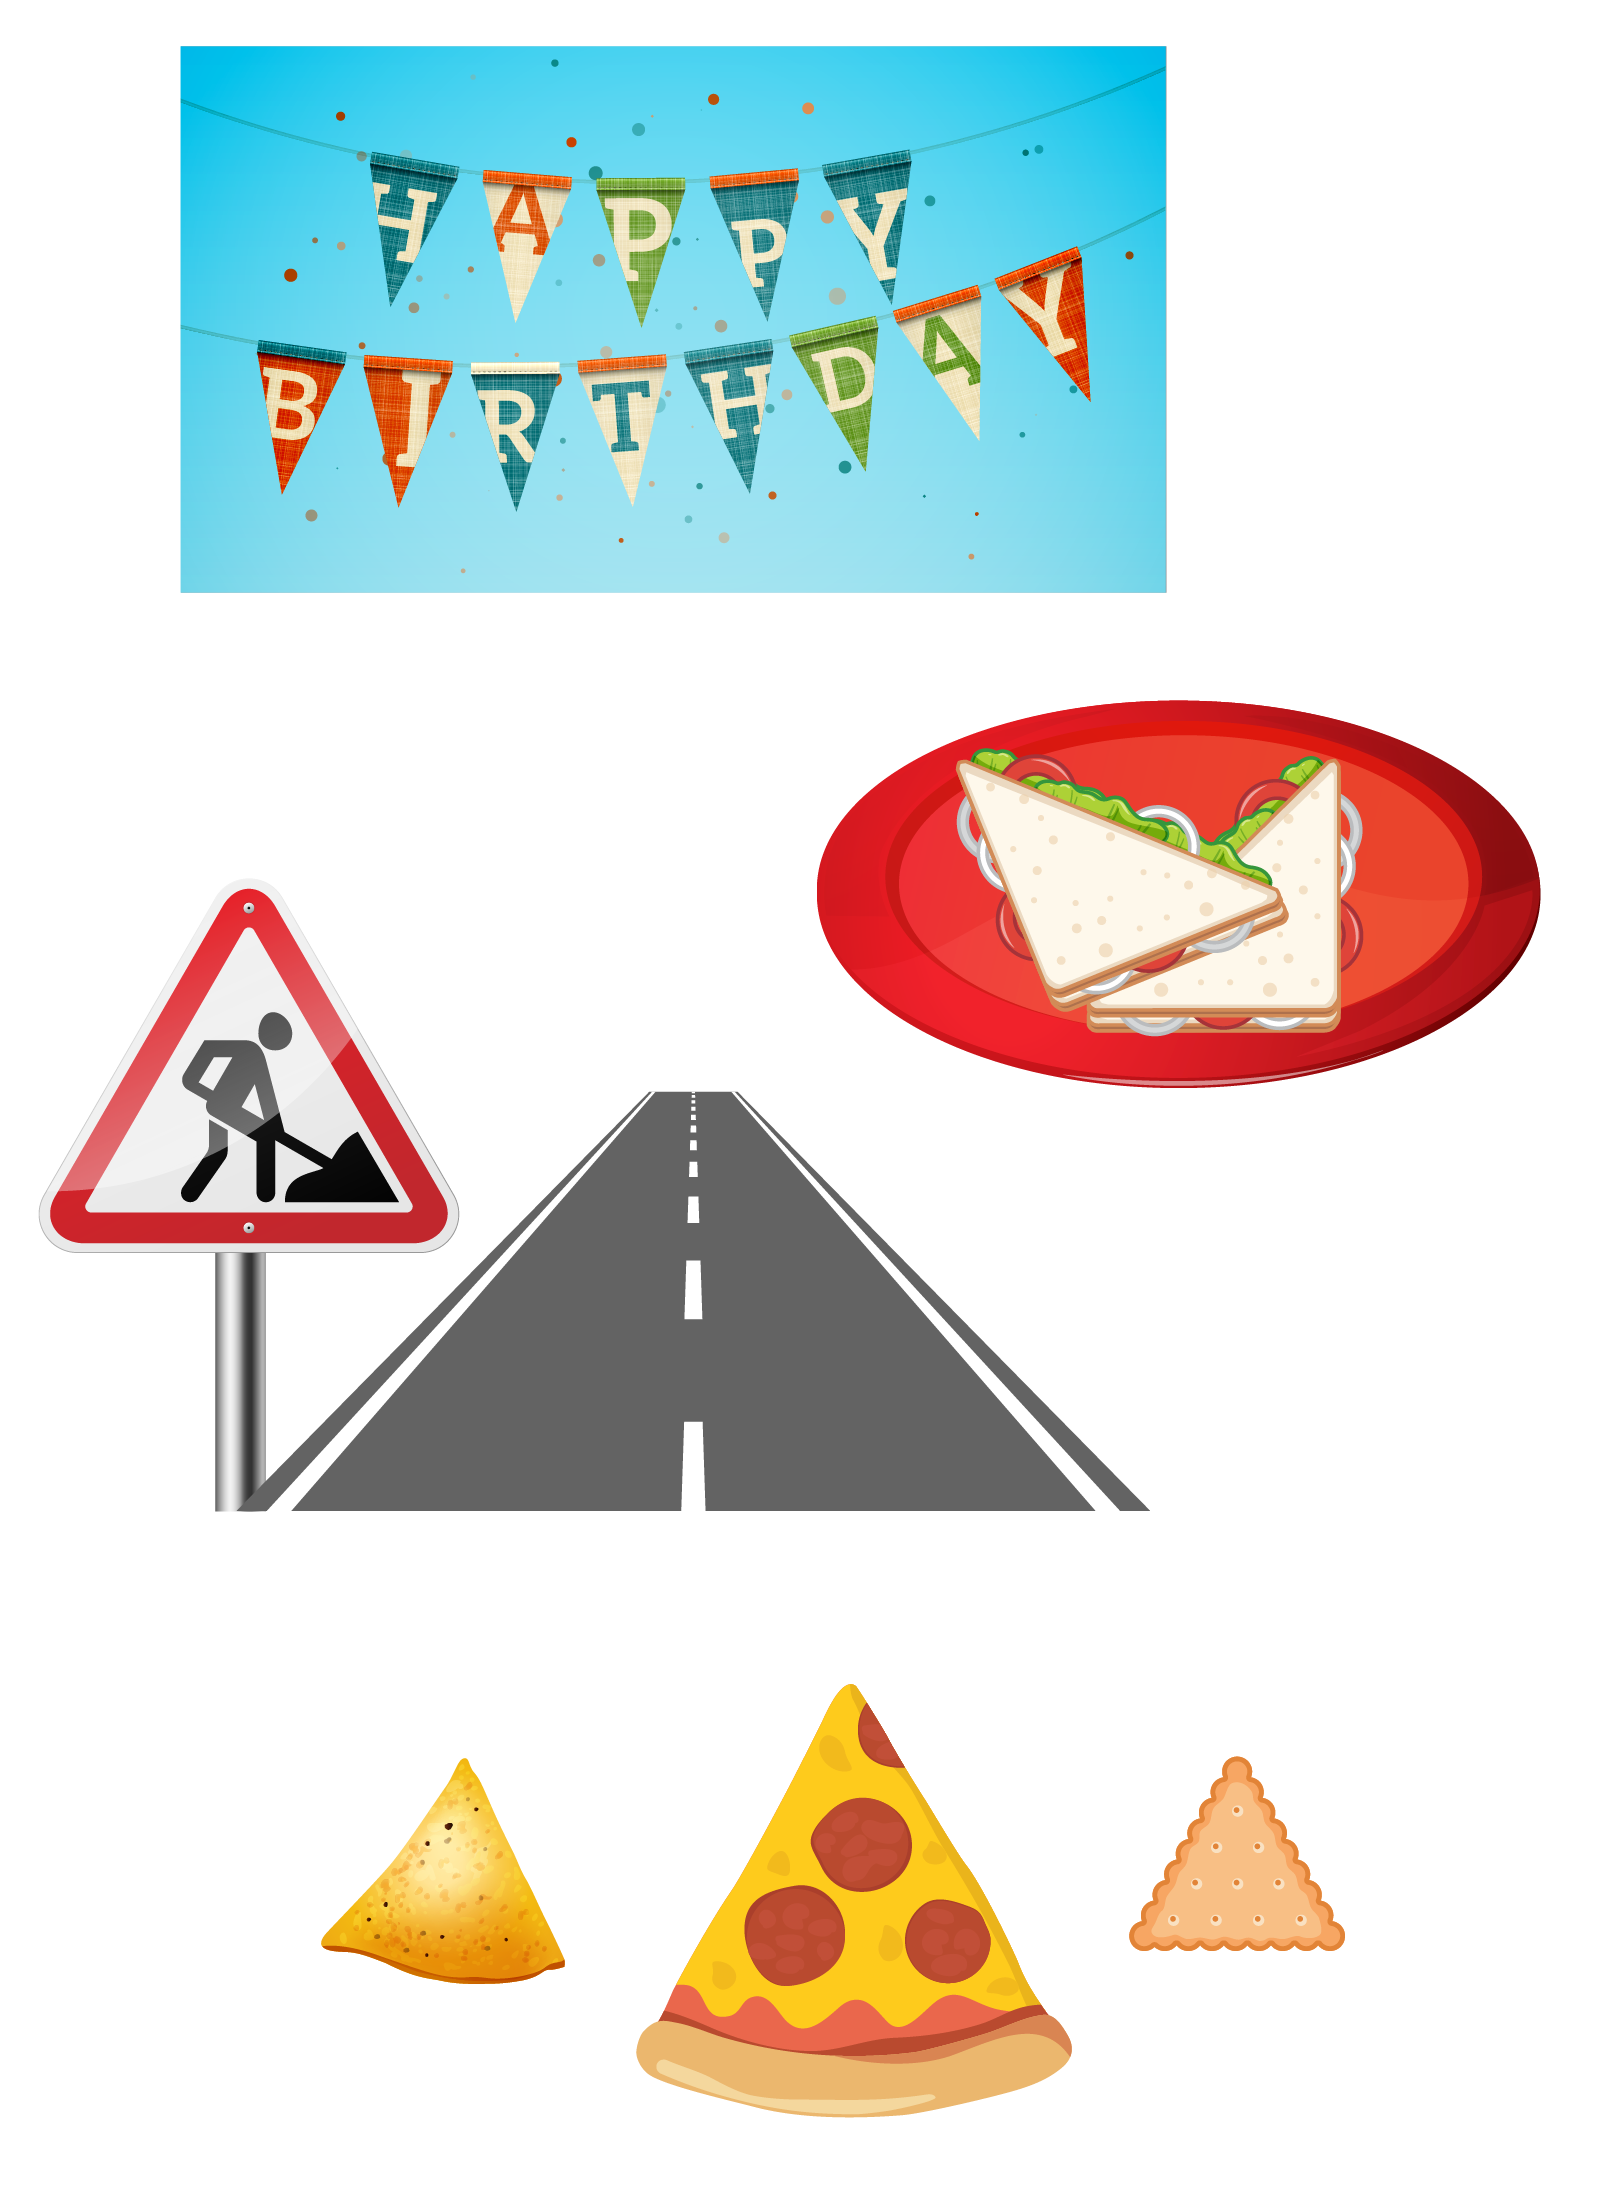 Triangle shapes - sign board, nachos, half sandwich, biscuits, a slice of pizza